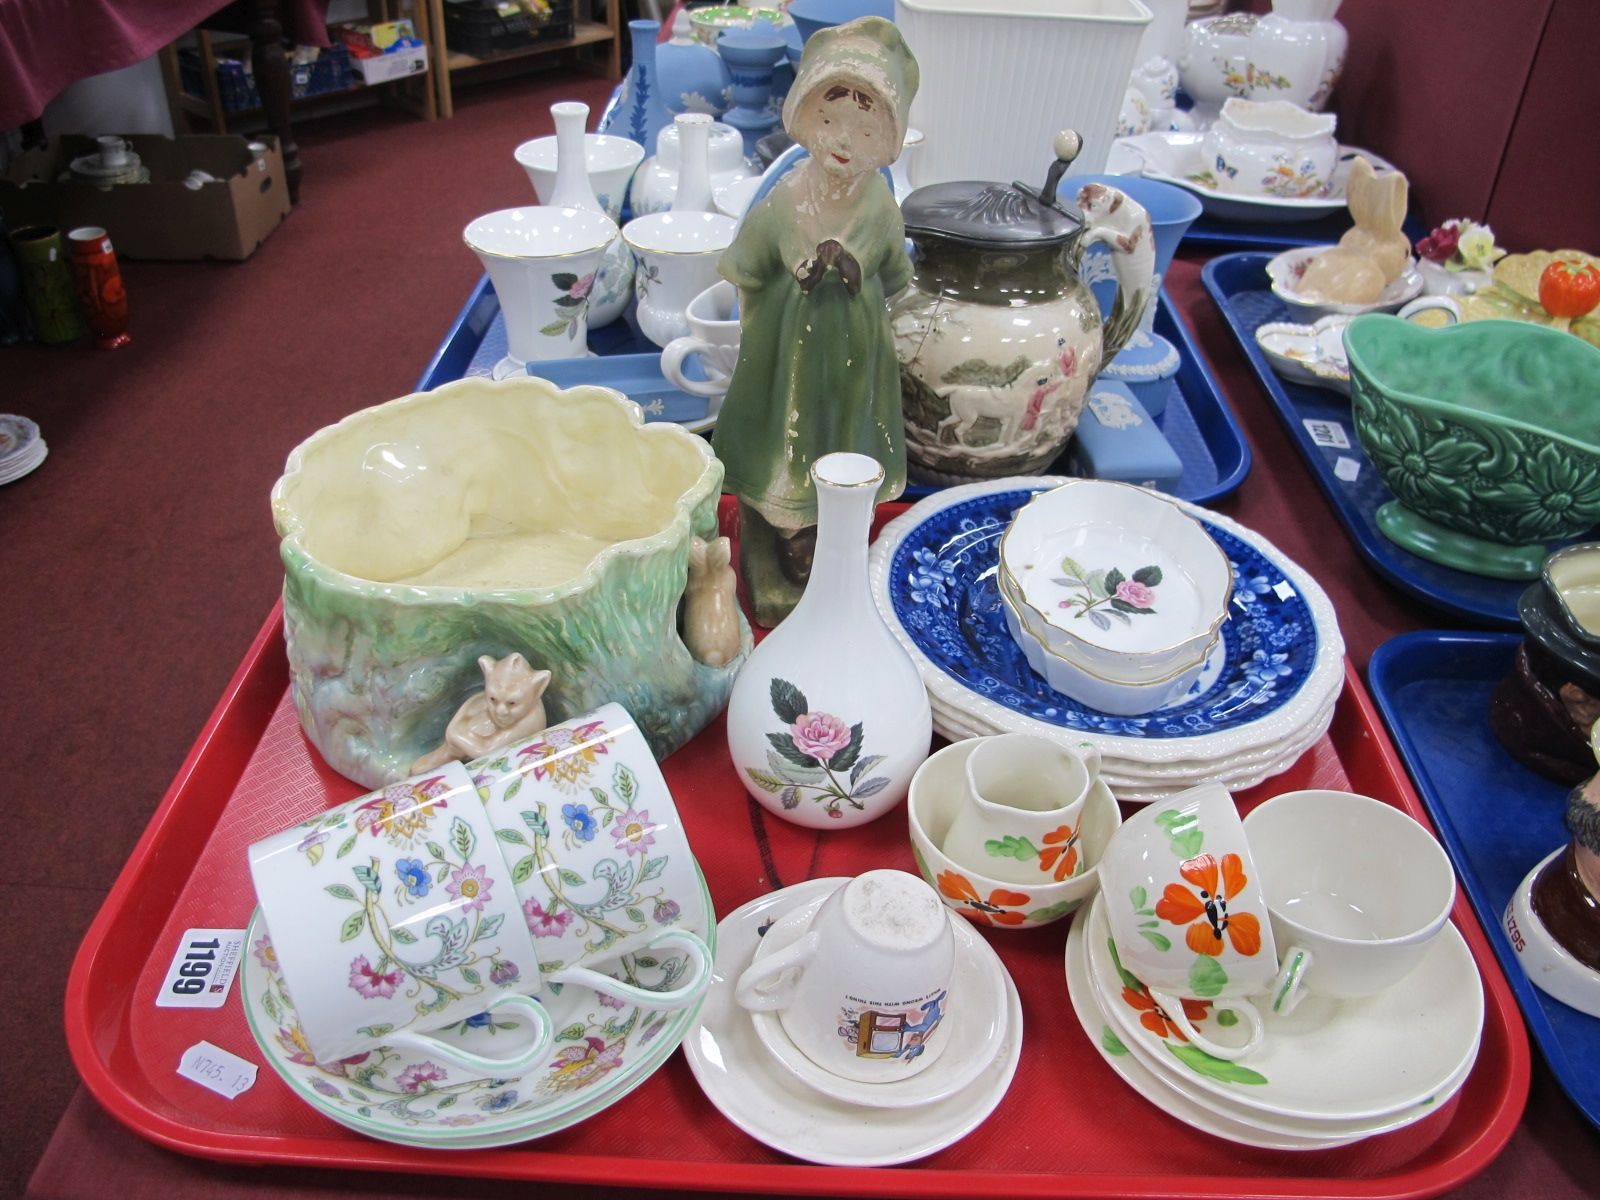 Minton 'Haddon Hall' Cup and Saucer, Sylvac elf Bowl, 1930's figures, other ceramics:- One Tray